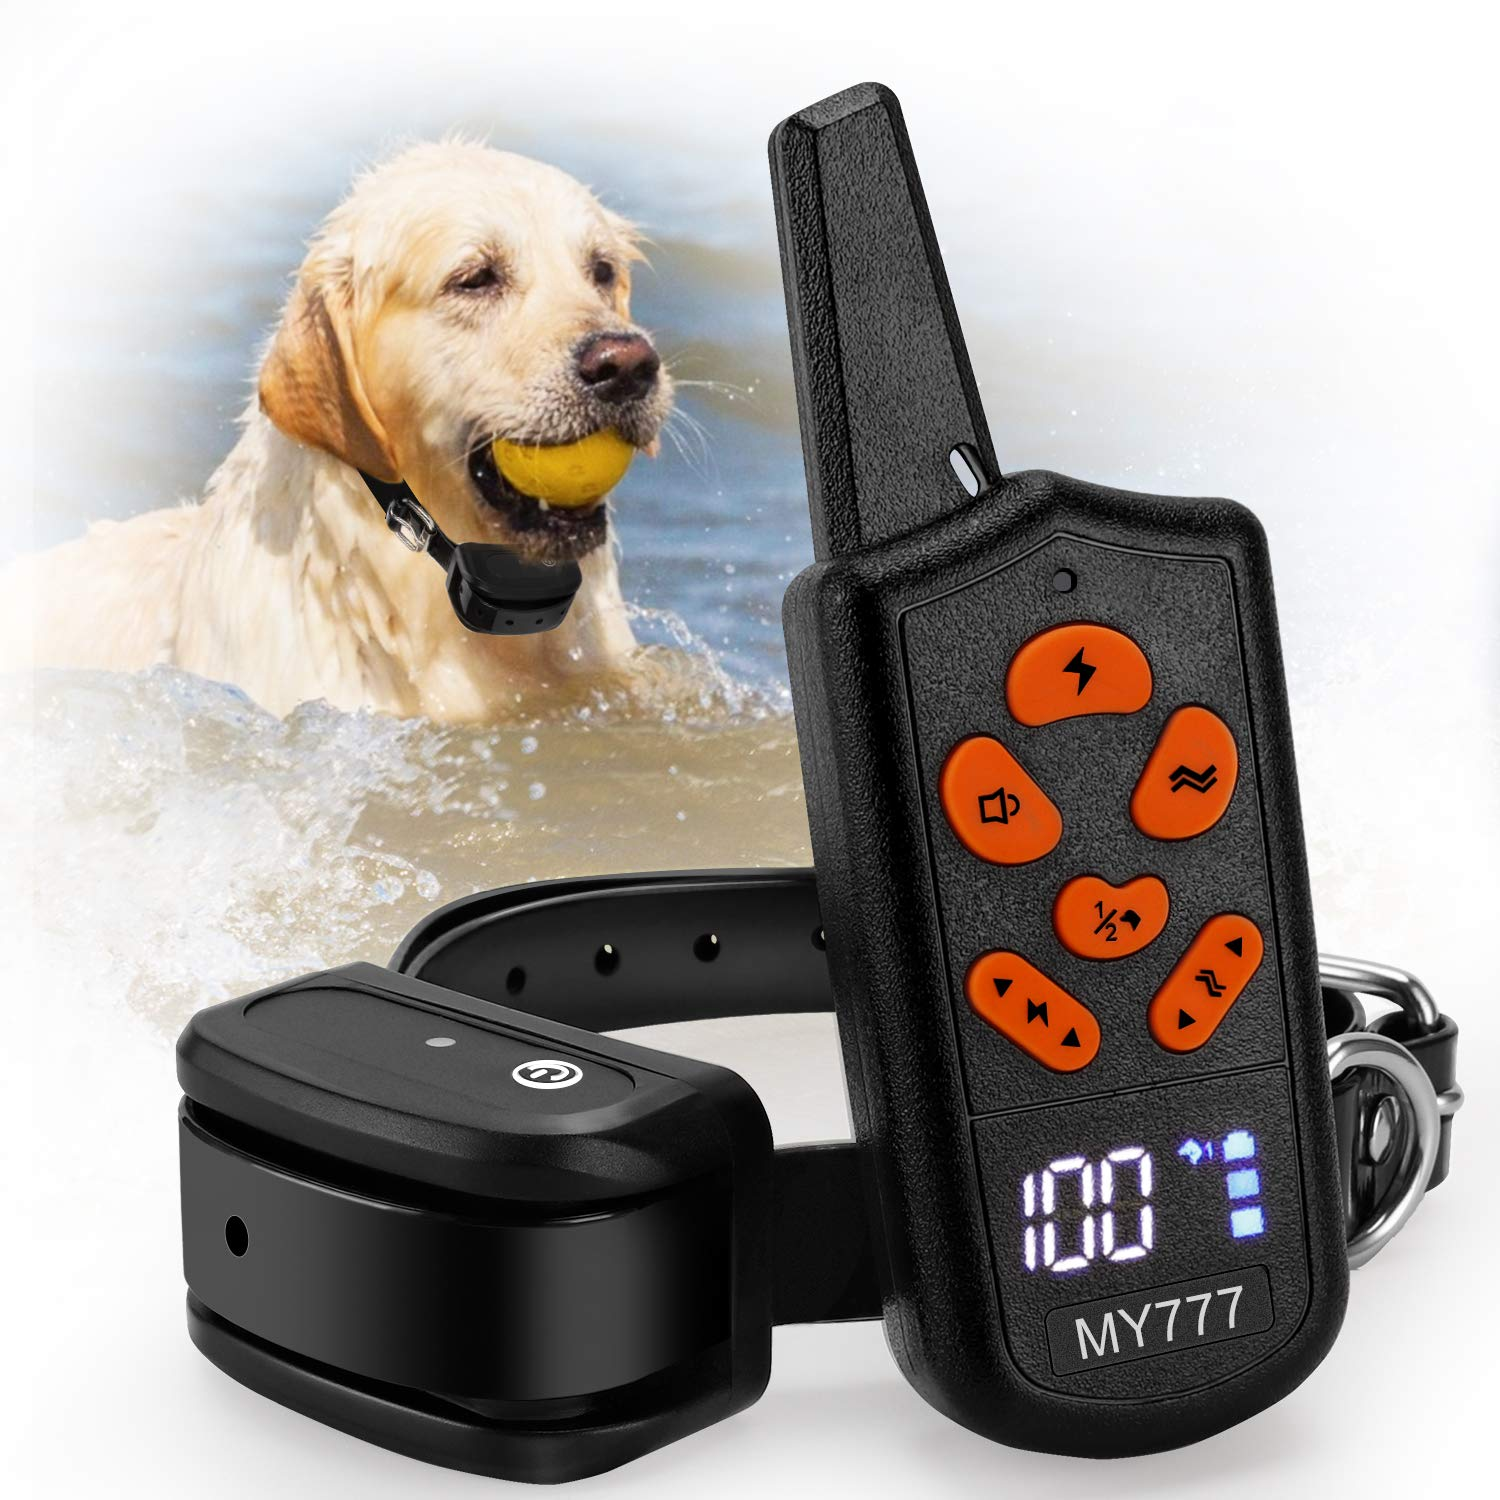 Dog Training Collar with Remote-Shock Collar for Dogs Large,Medium,Small-Waterproof E-Collar w/ 3 Correction Modes, Beep, Vibration,Shock|Pet Tech Dog Collar offer 1~100 Shock Levels ,1600ft Remote by zenvey